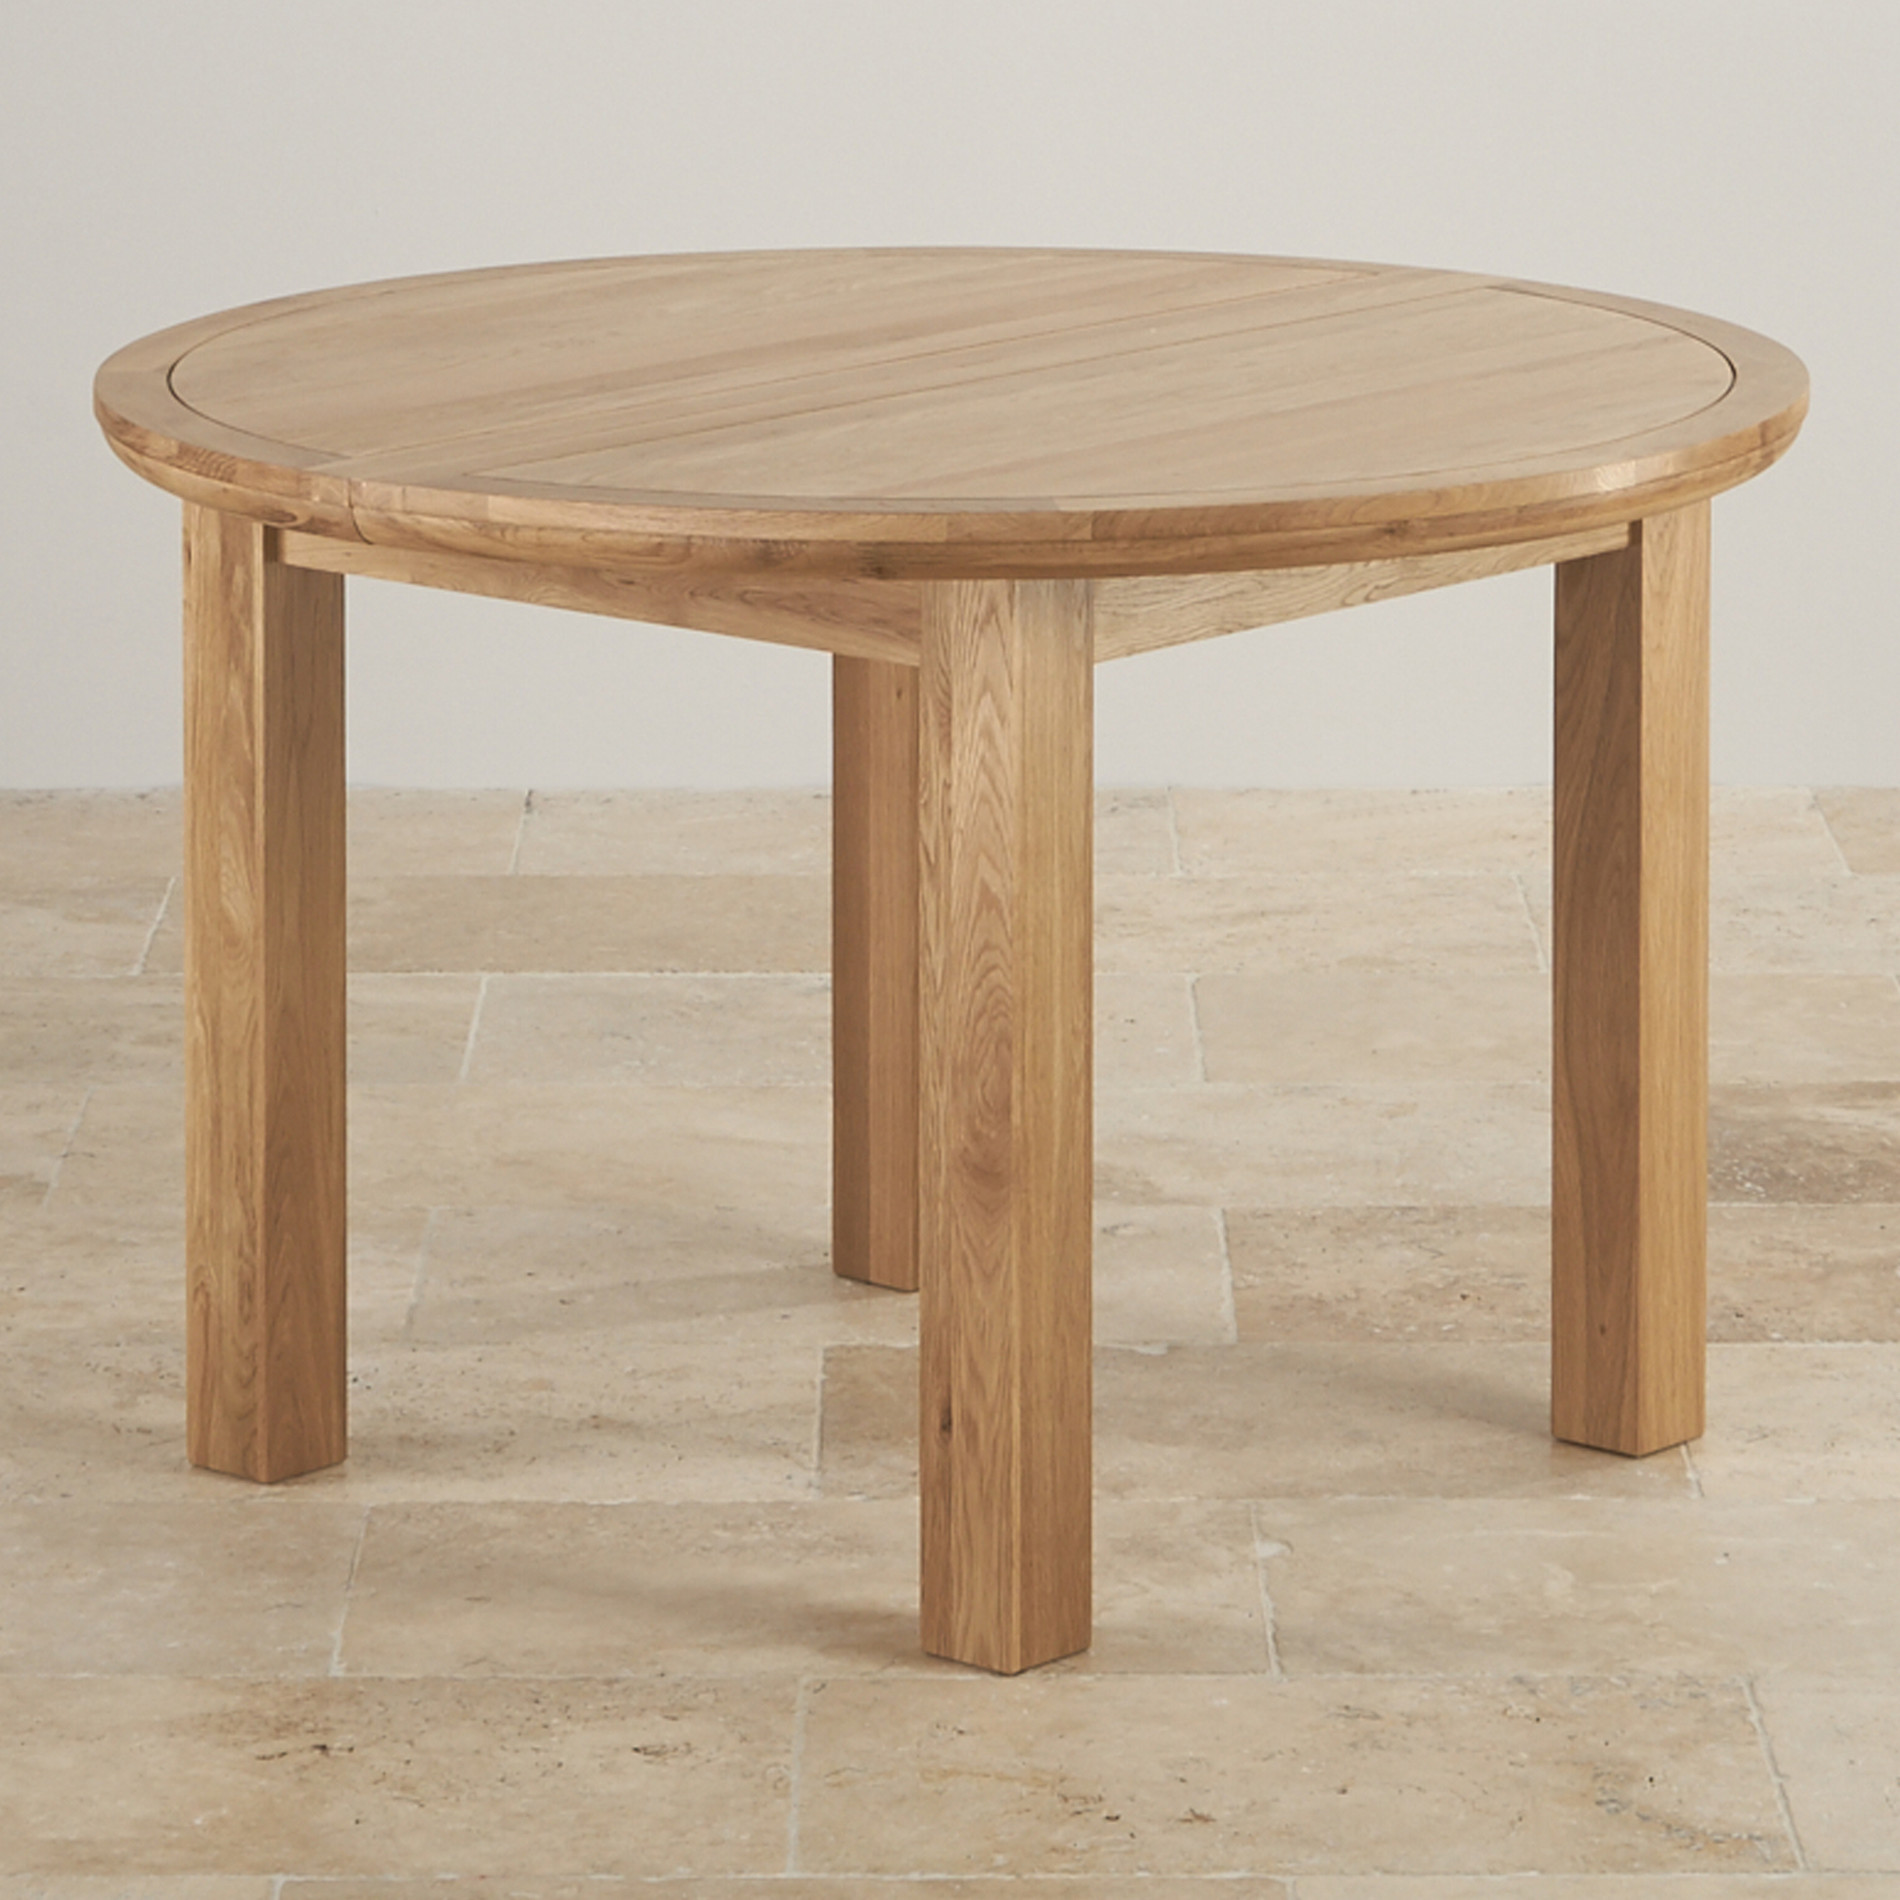 . knightsbridge ft extending round dining table in natural oak